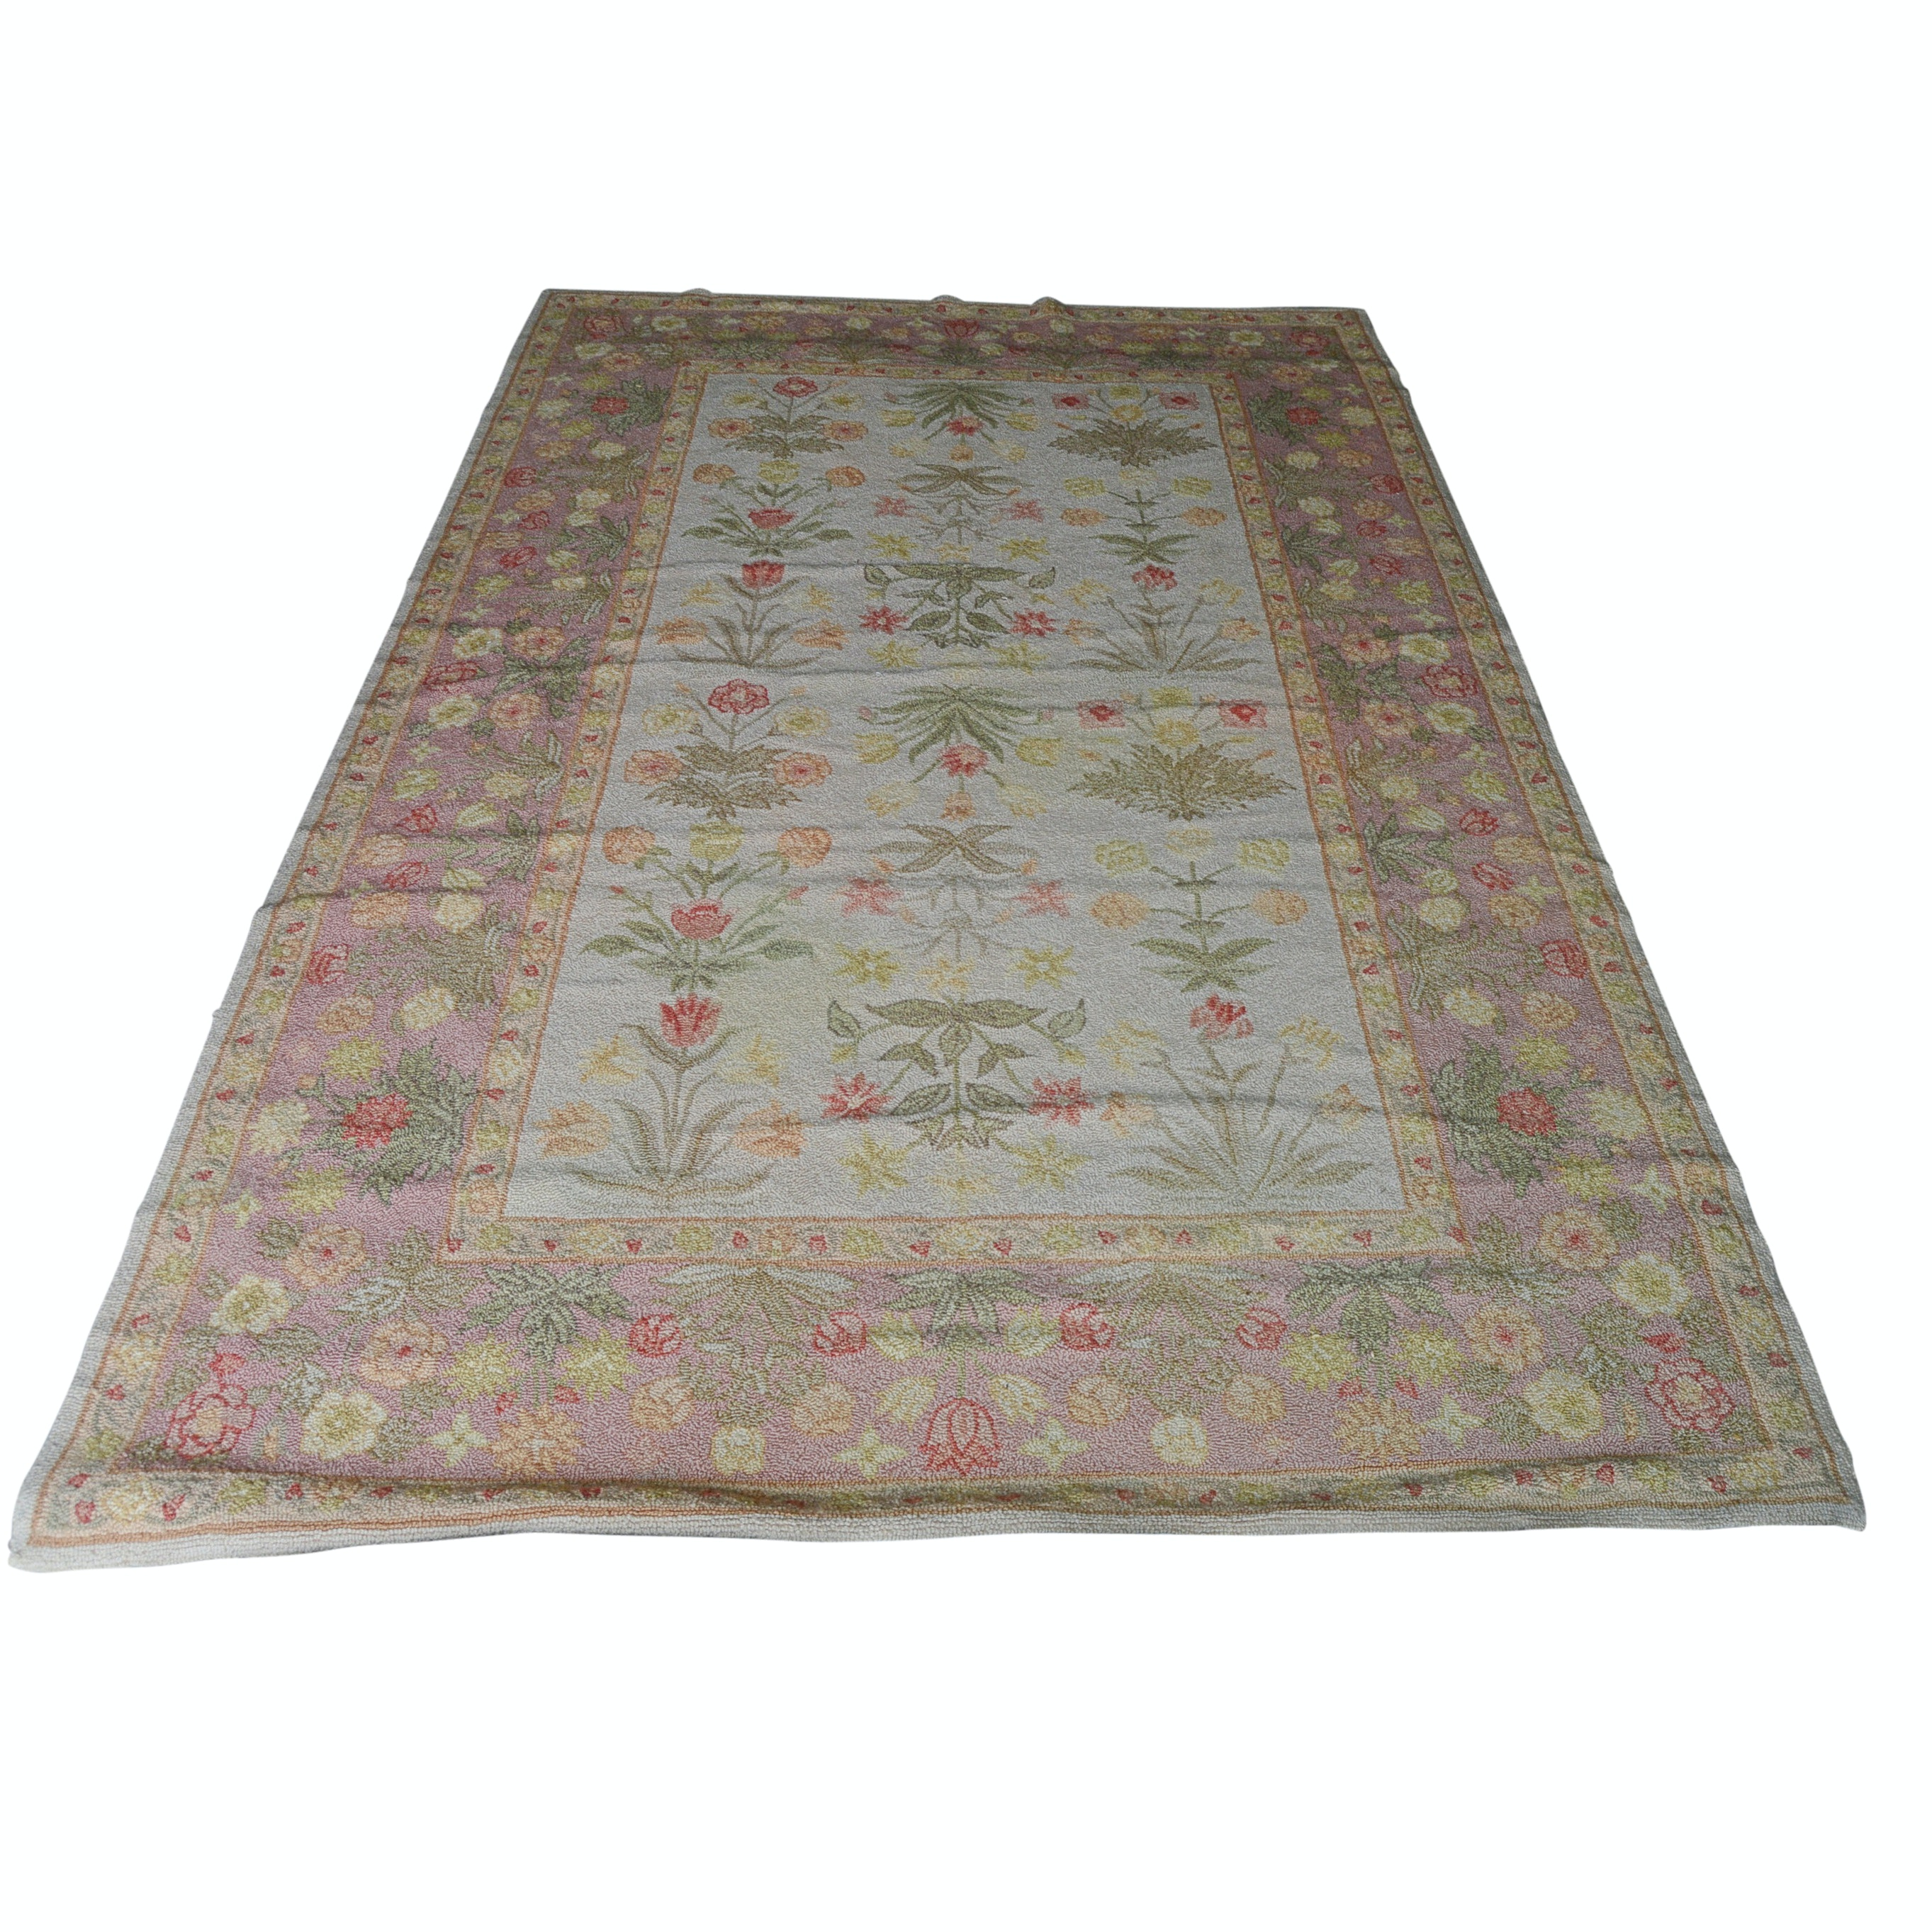 Chinese Hooked Wool Floral Area Rug from The Rug Gallery